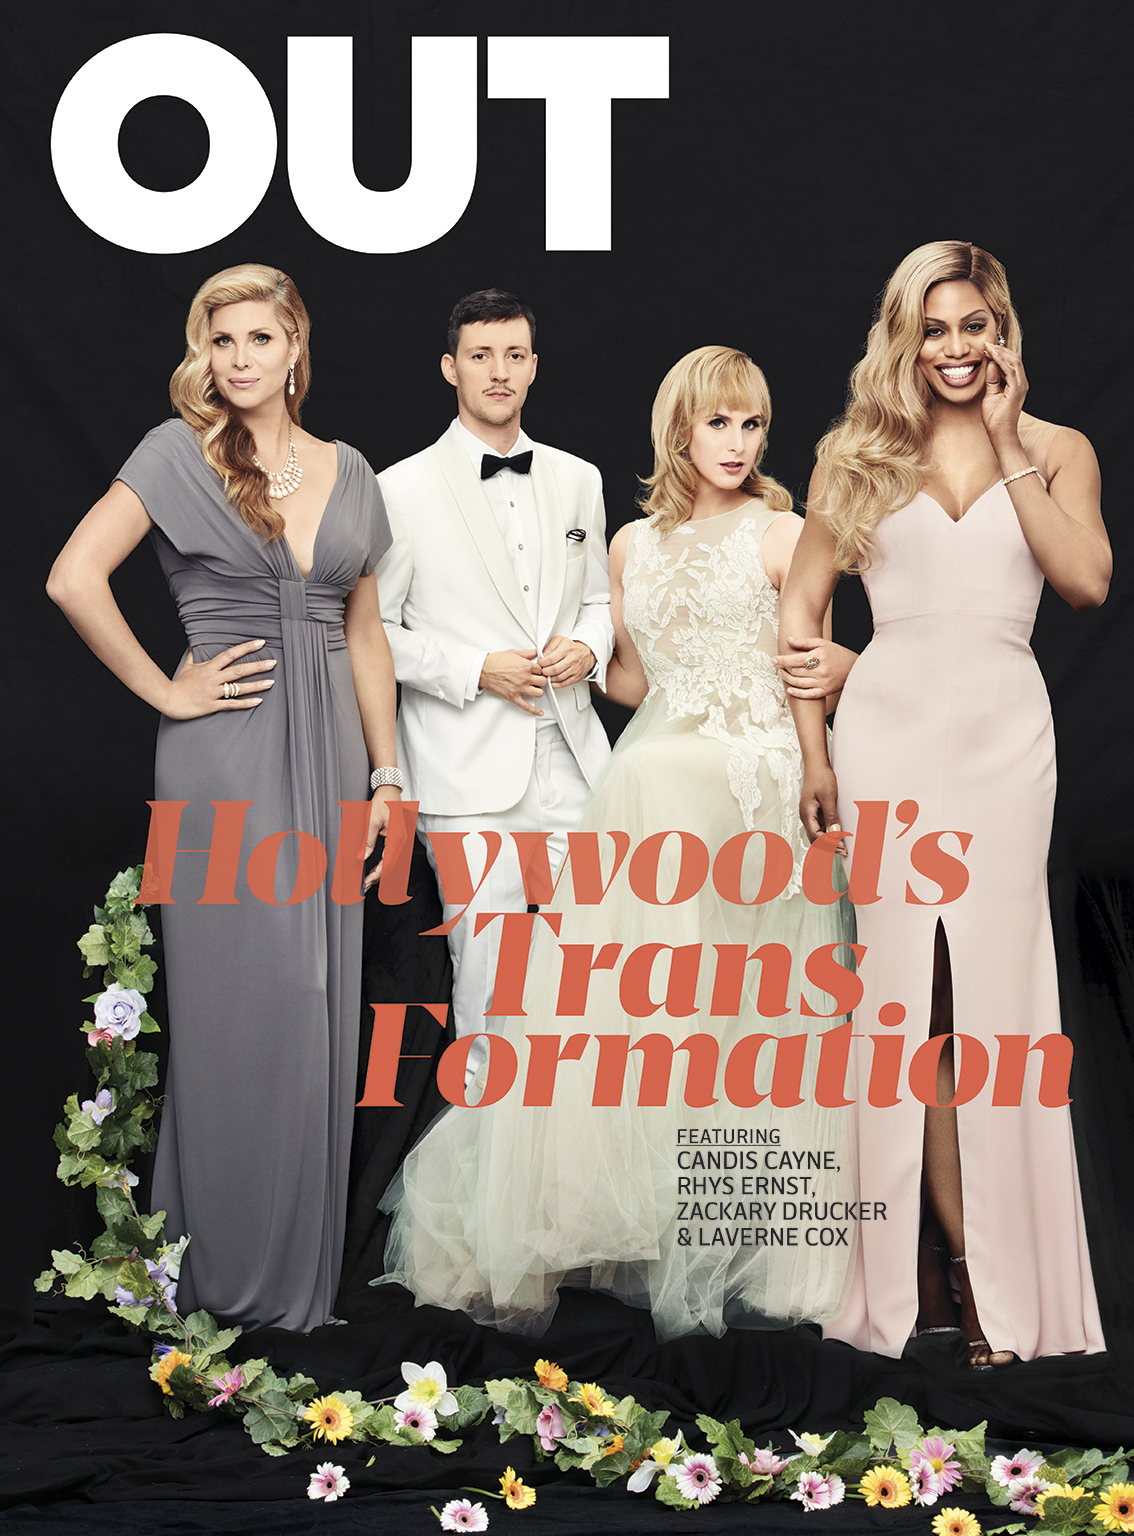 Emily Shur shot several trans icons, including Laverne Cox, Candis Cayne, Caitlyn Jenner, and the cast and crew of Amazon's  Transparent , for  OUT Magazine's   Trans Hollywood issue .